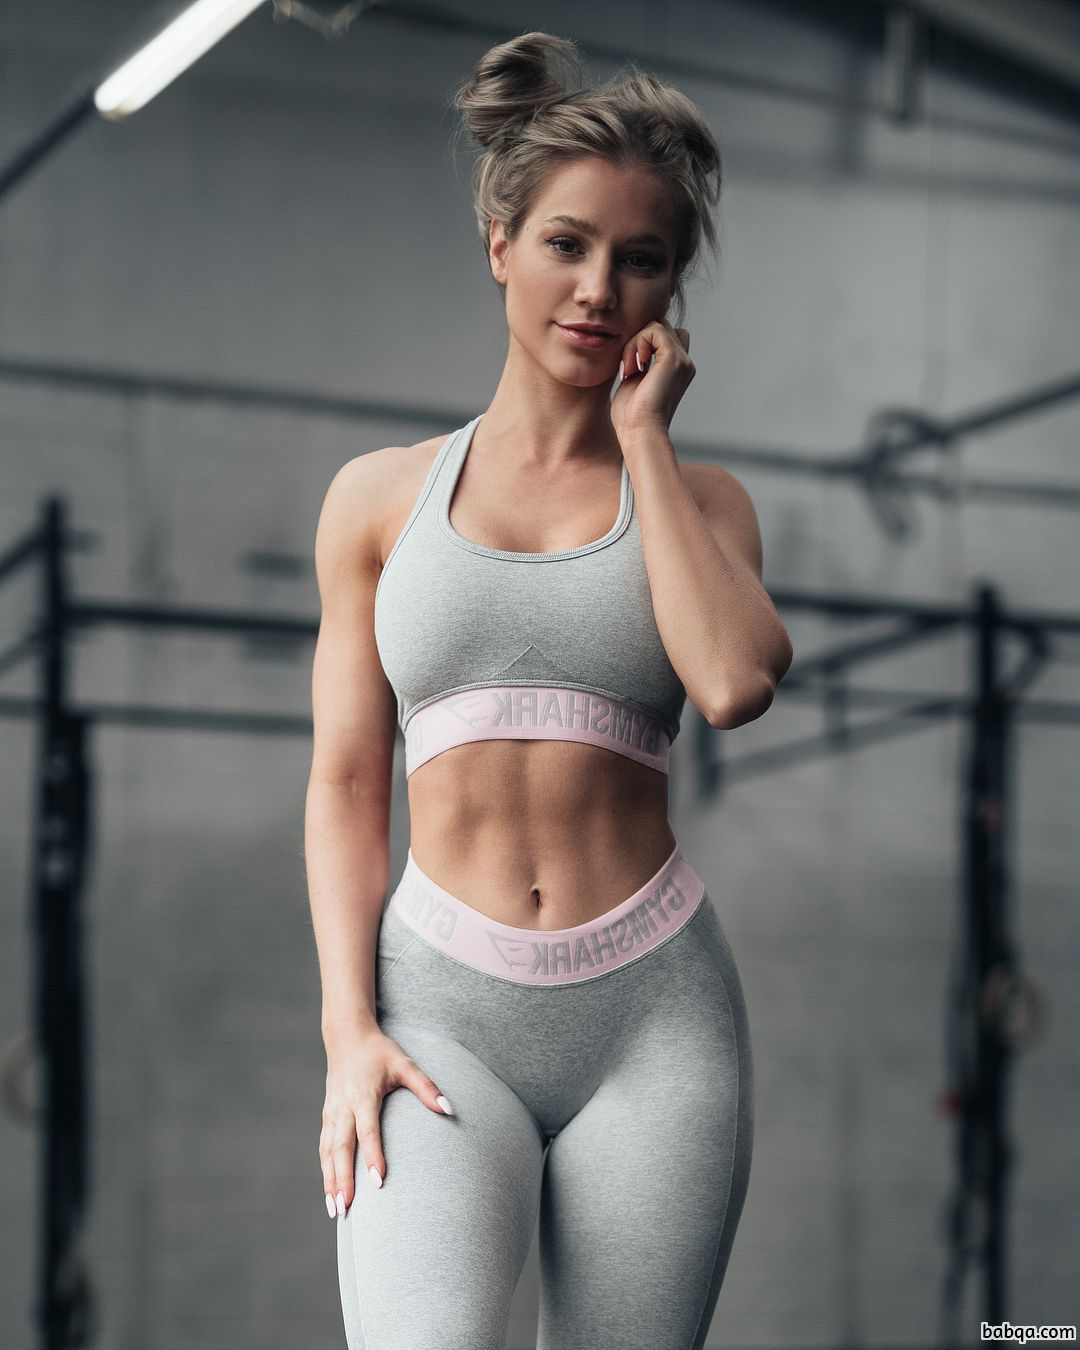 hot fe body image repost from gymsharkwomen – body sculpting workout for beginners